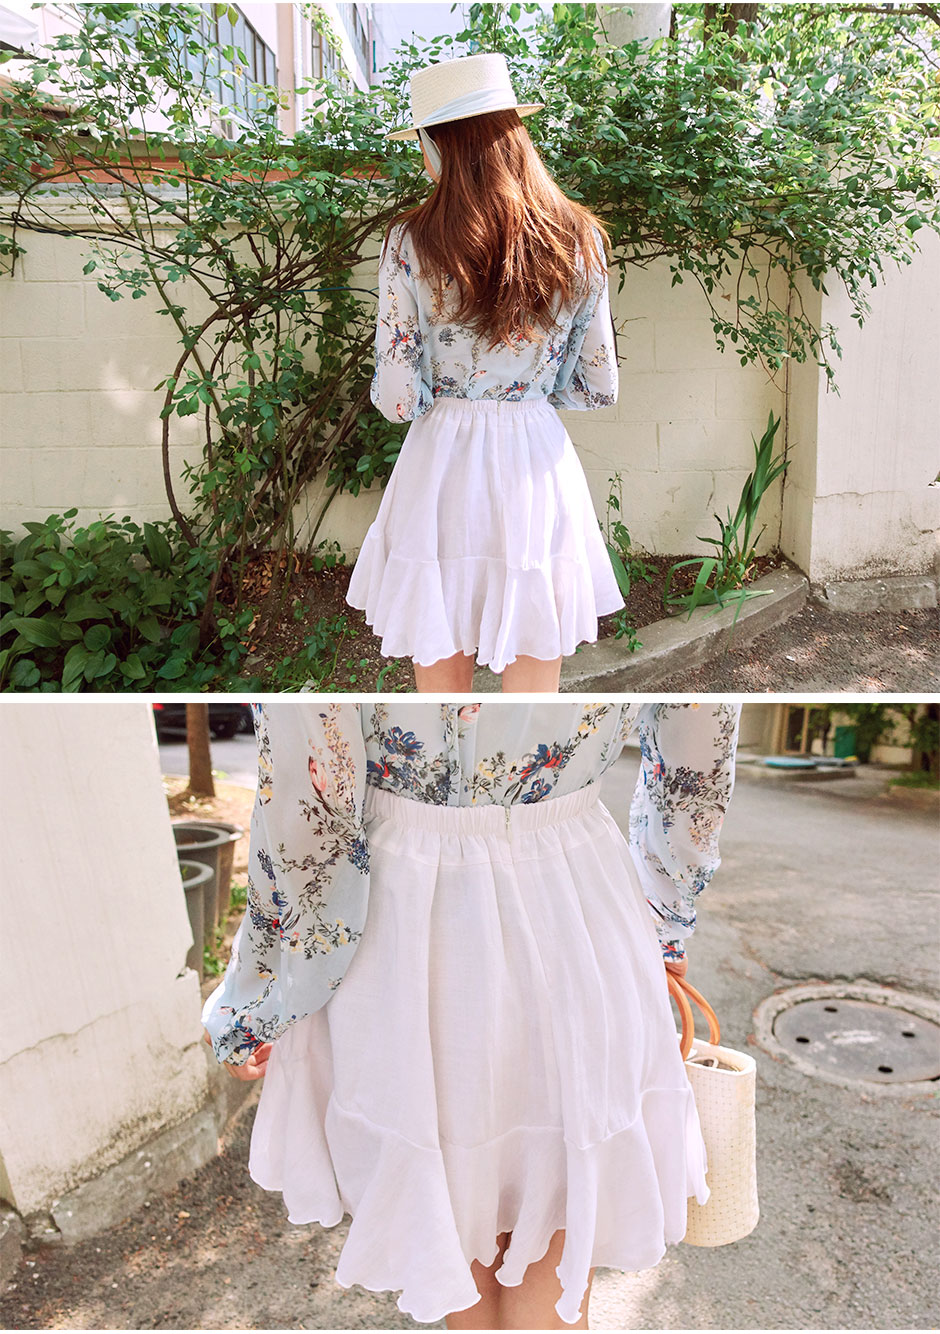 //cdn.nhanh.vn/cdn/store/29770/psCT/20181010/9452006/CHUU_By_My_Side_Flower_Blouse_(25).jpg